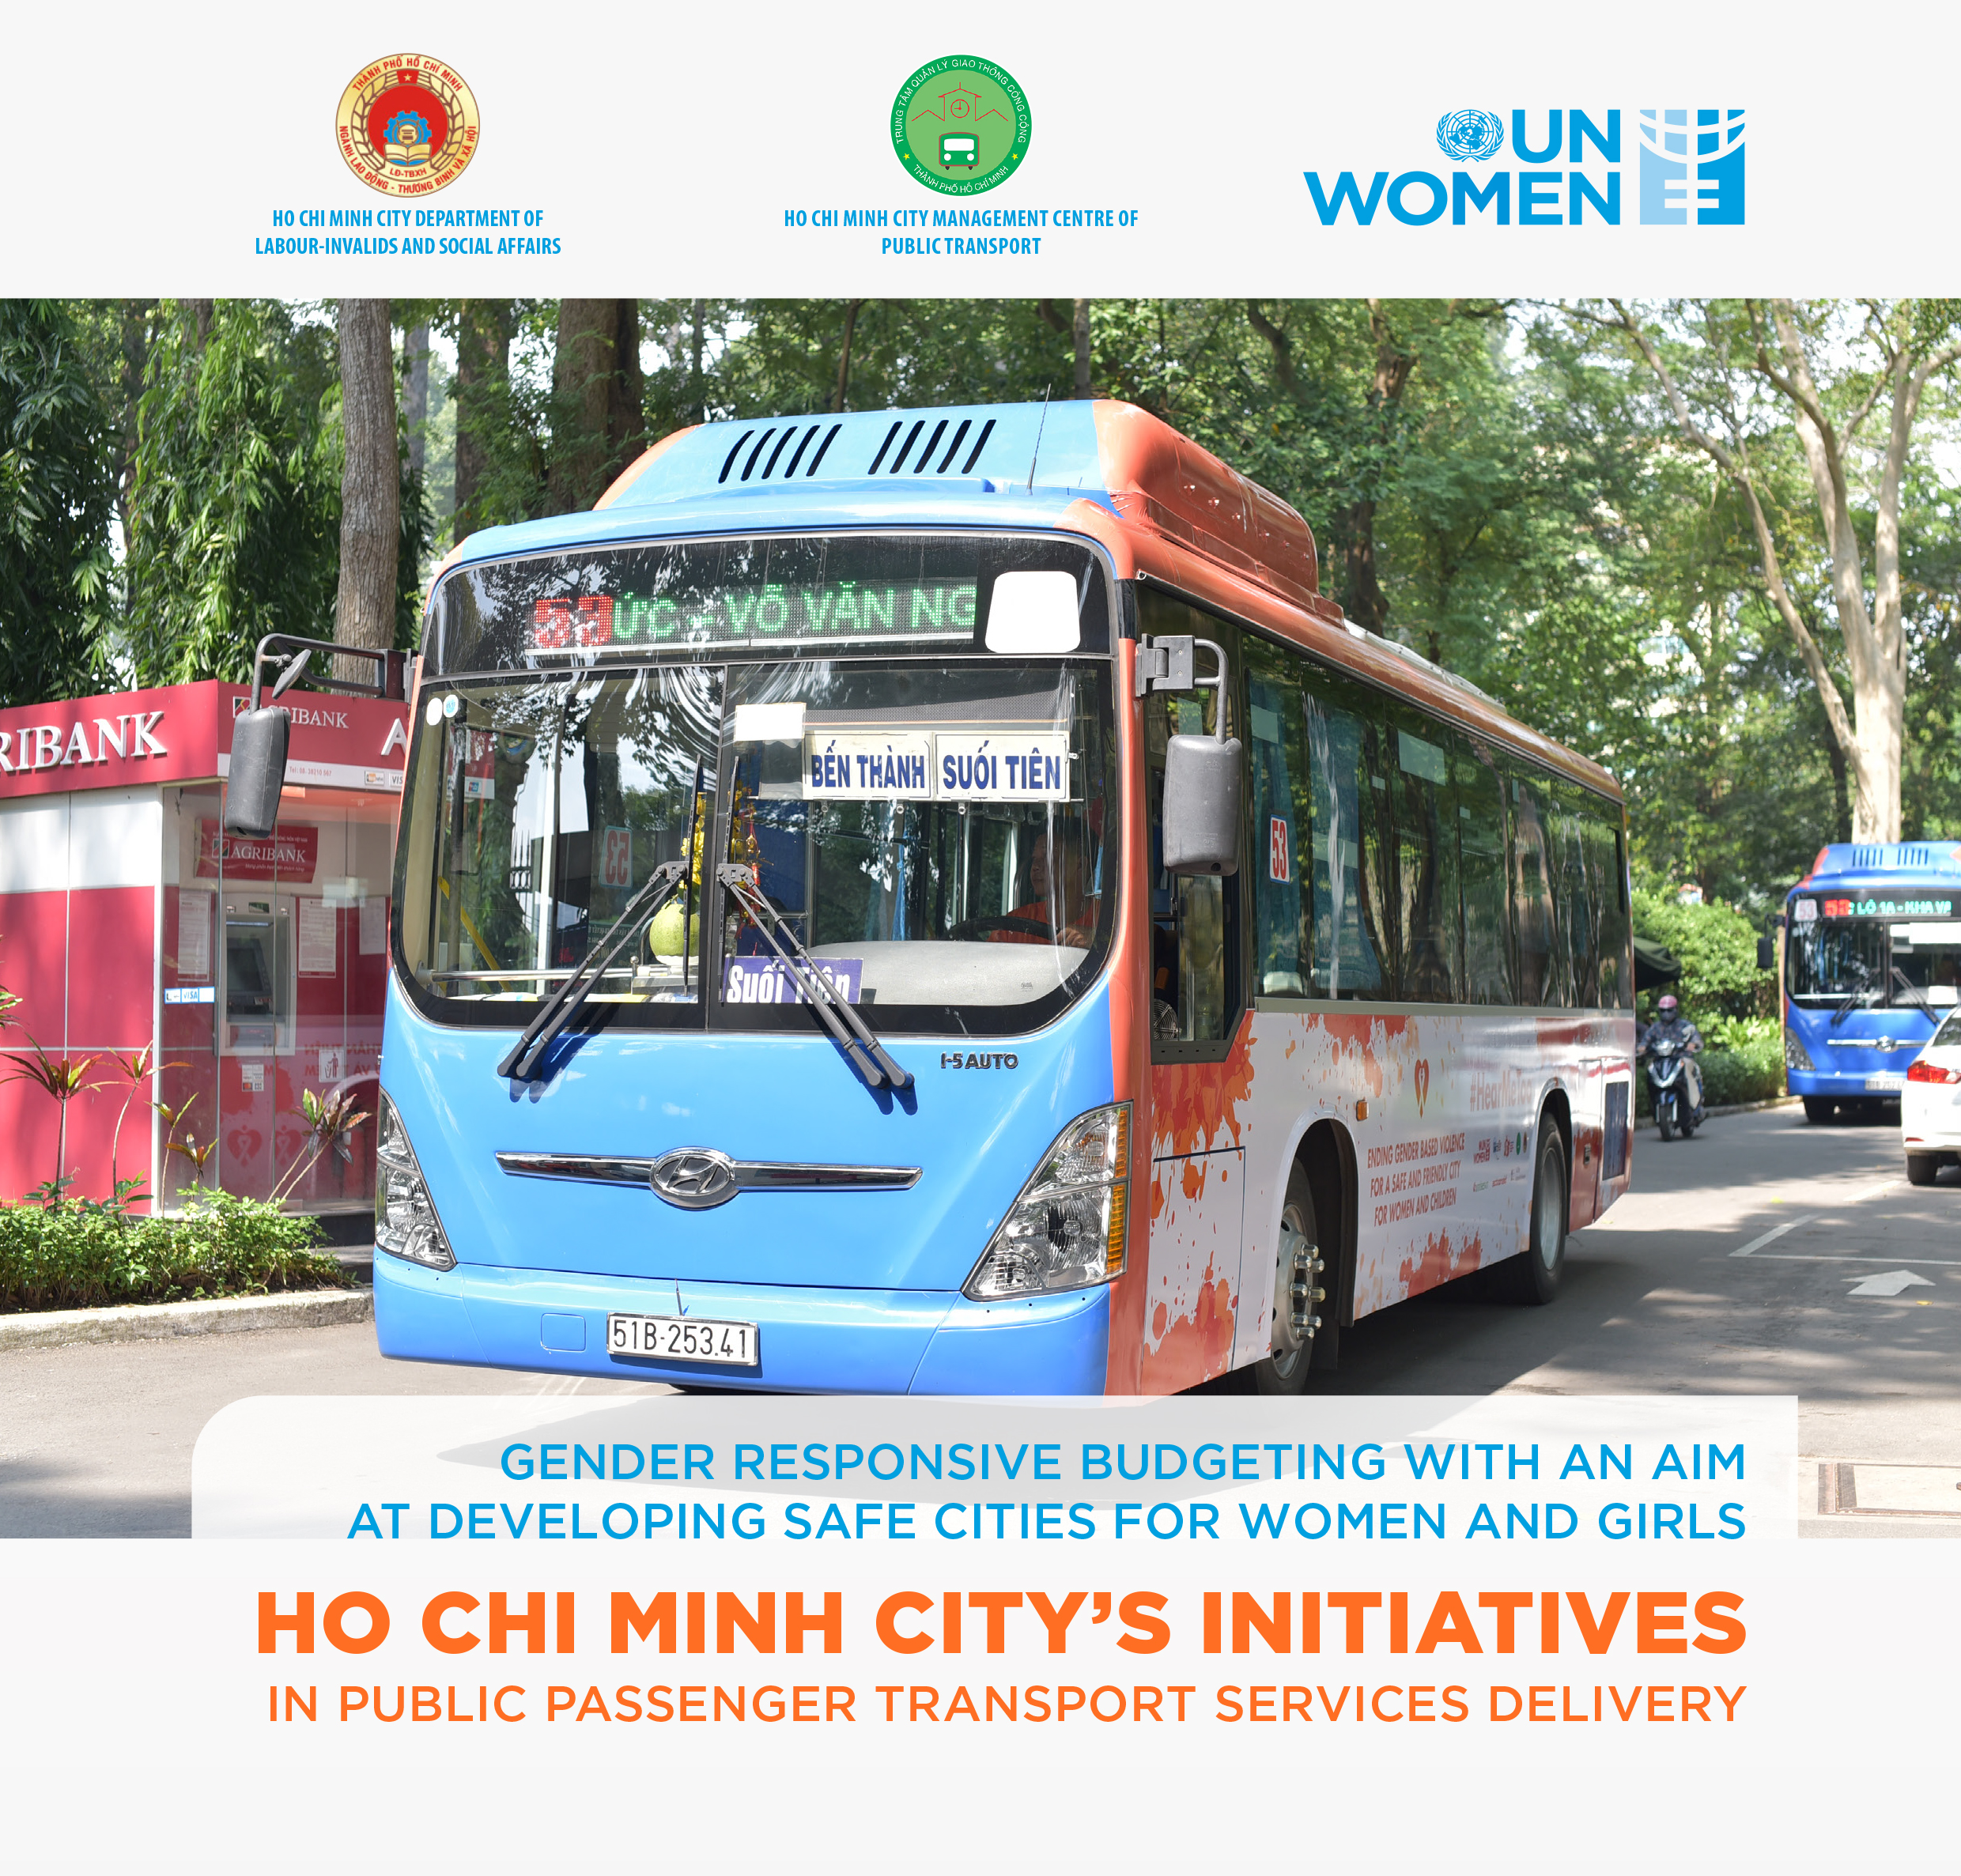 Gender Responsive Budgeting with an aim at developing safe cities for women and girls: Ho Chi Minh City's initiatives in public passenger transport services delivery